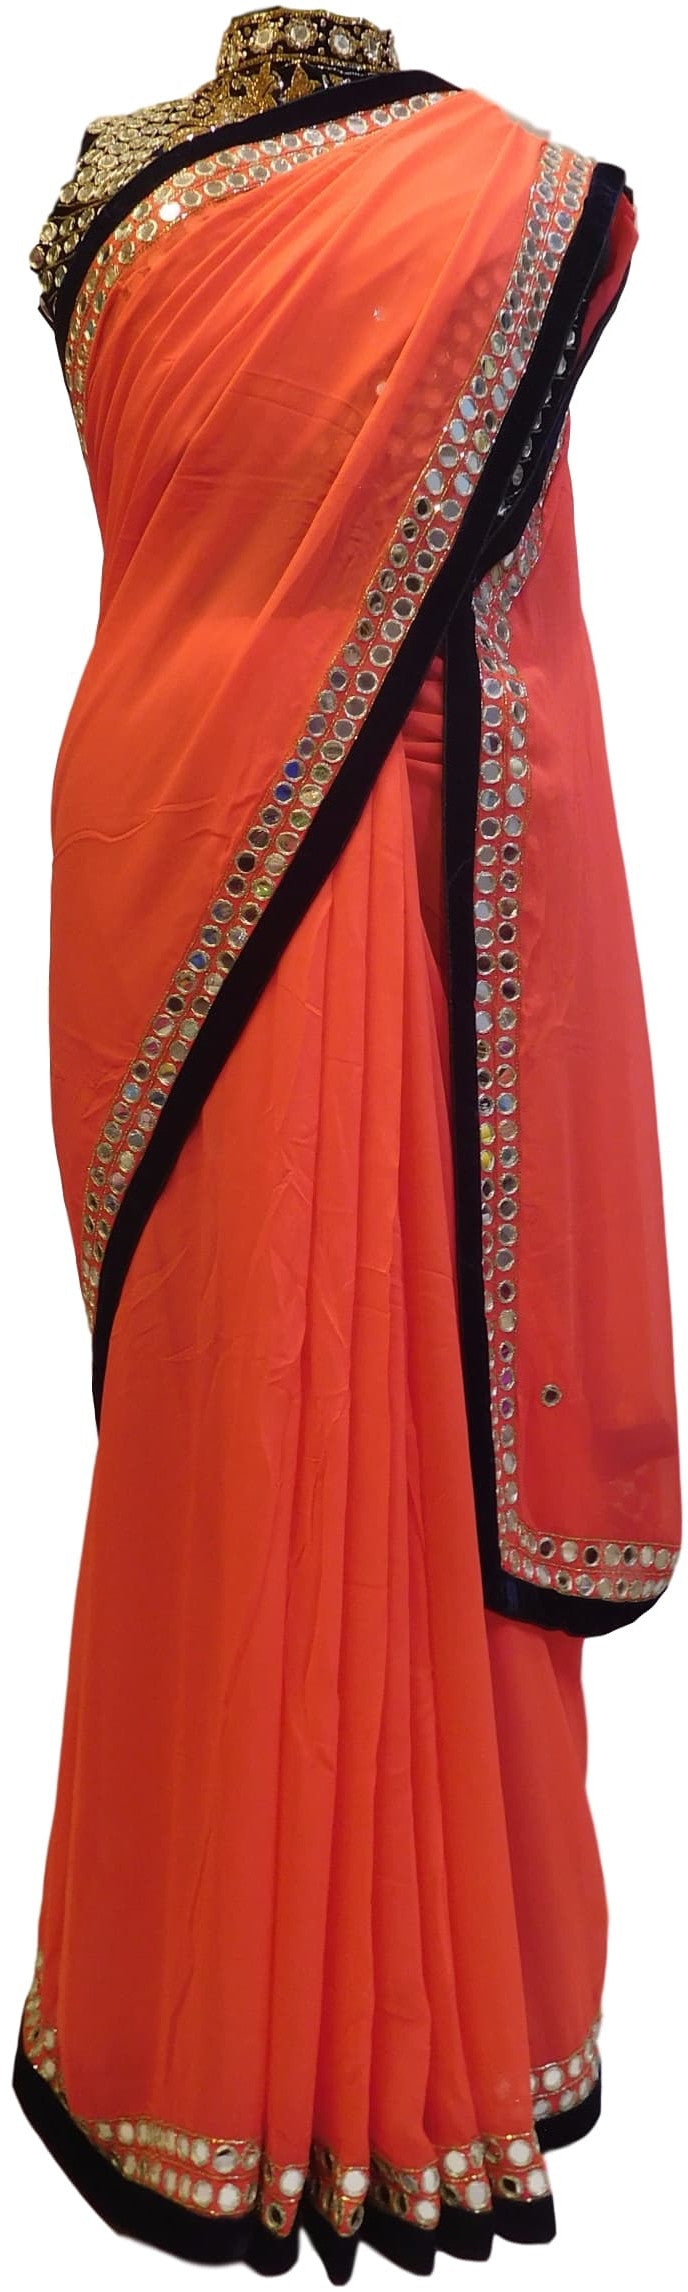 Gajari Boutique Mirror Border Work Sari Saree With Heavy Designer Blouse